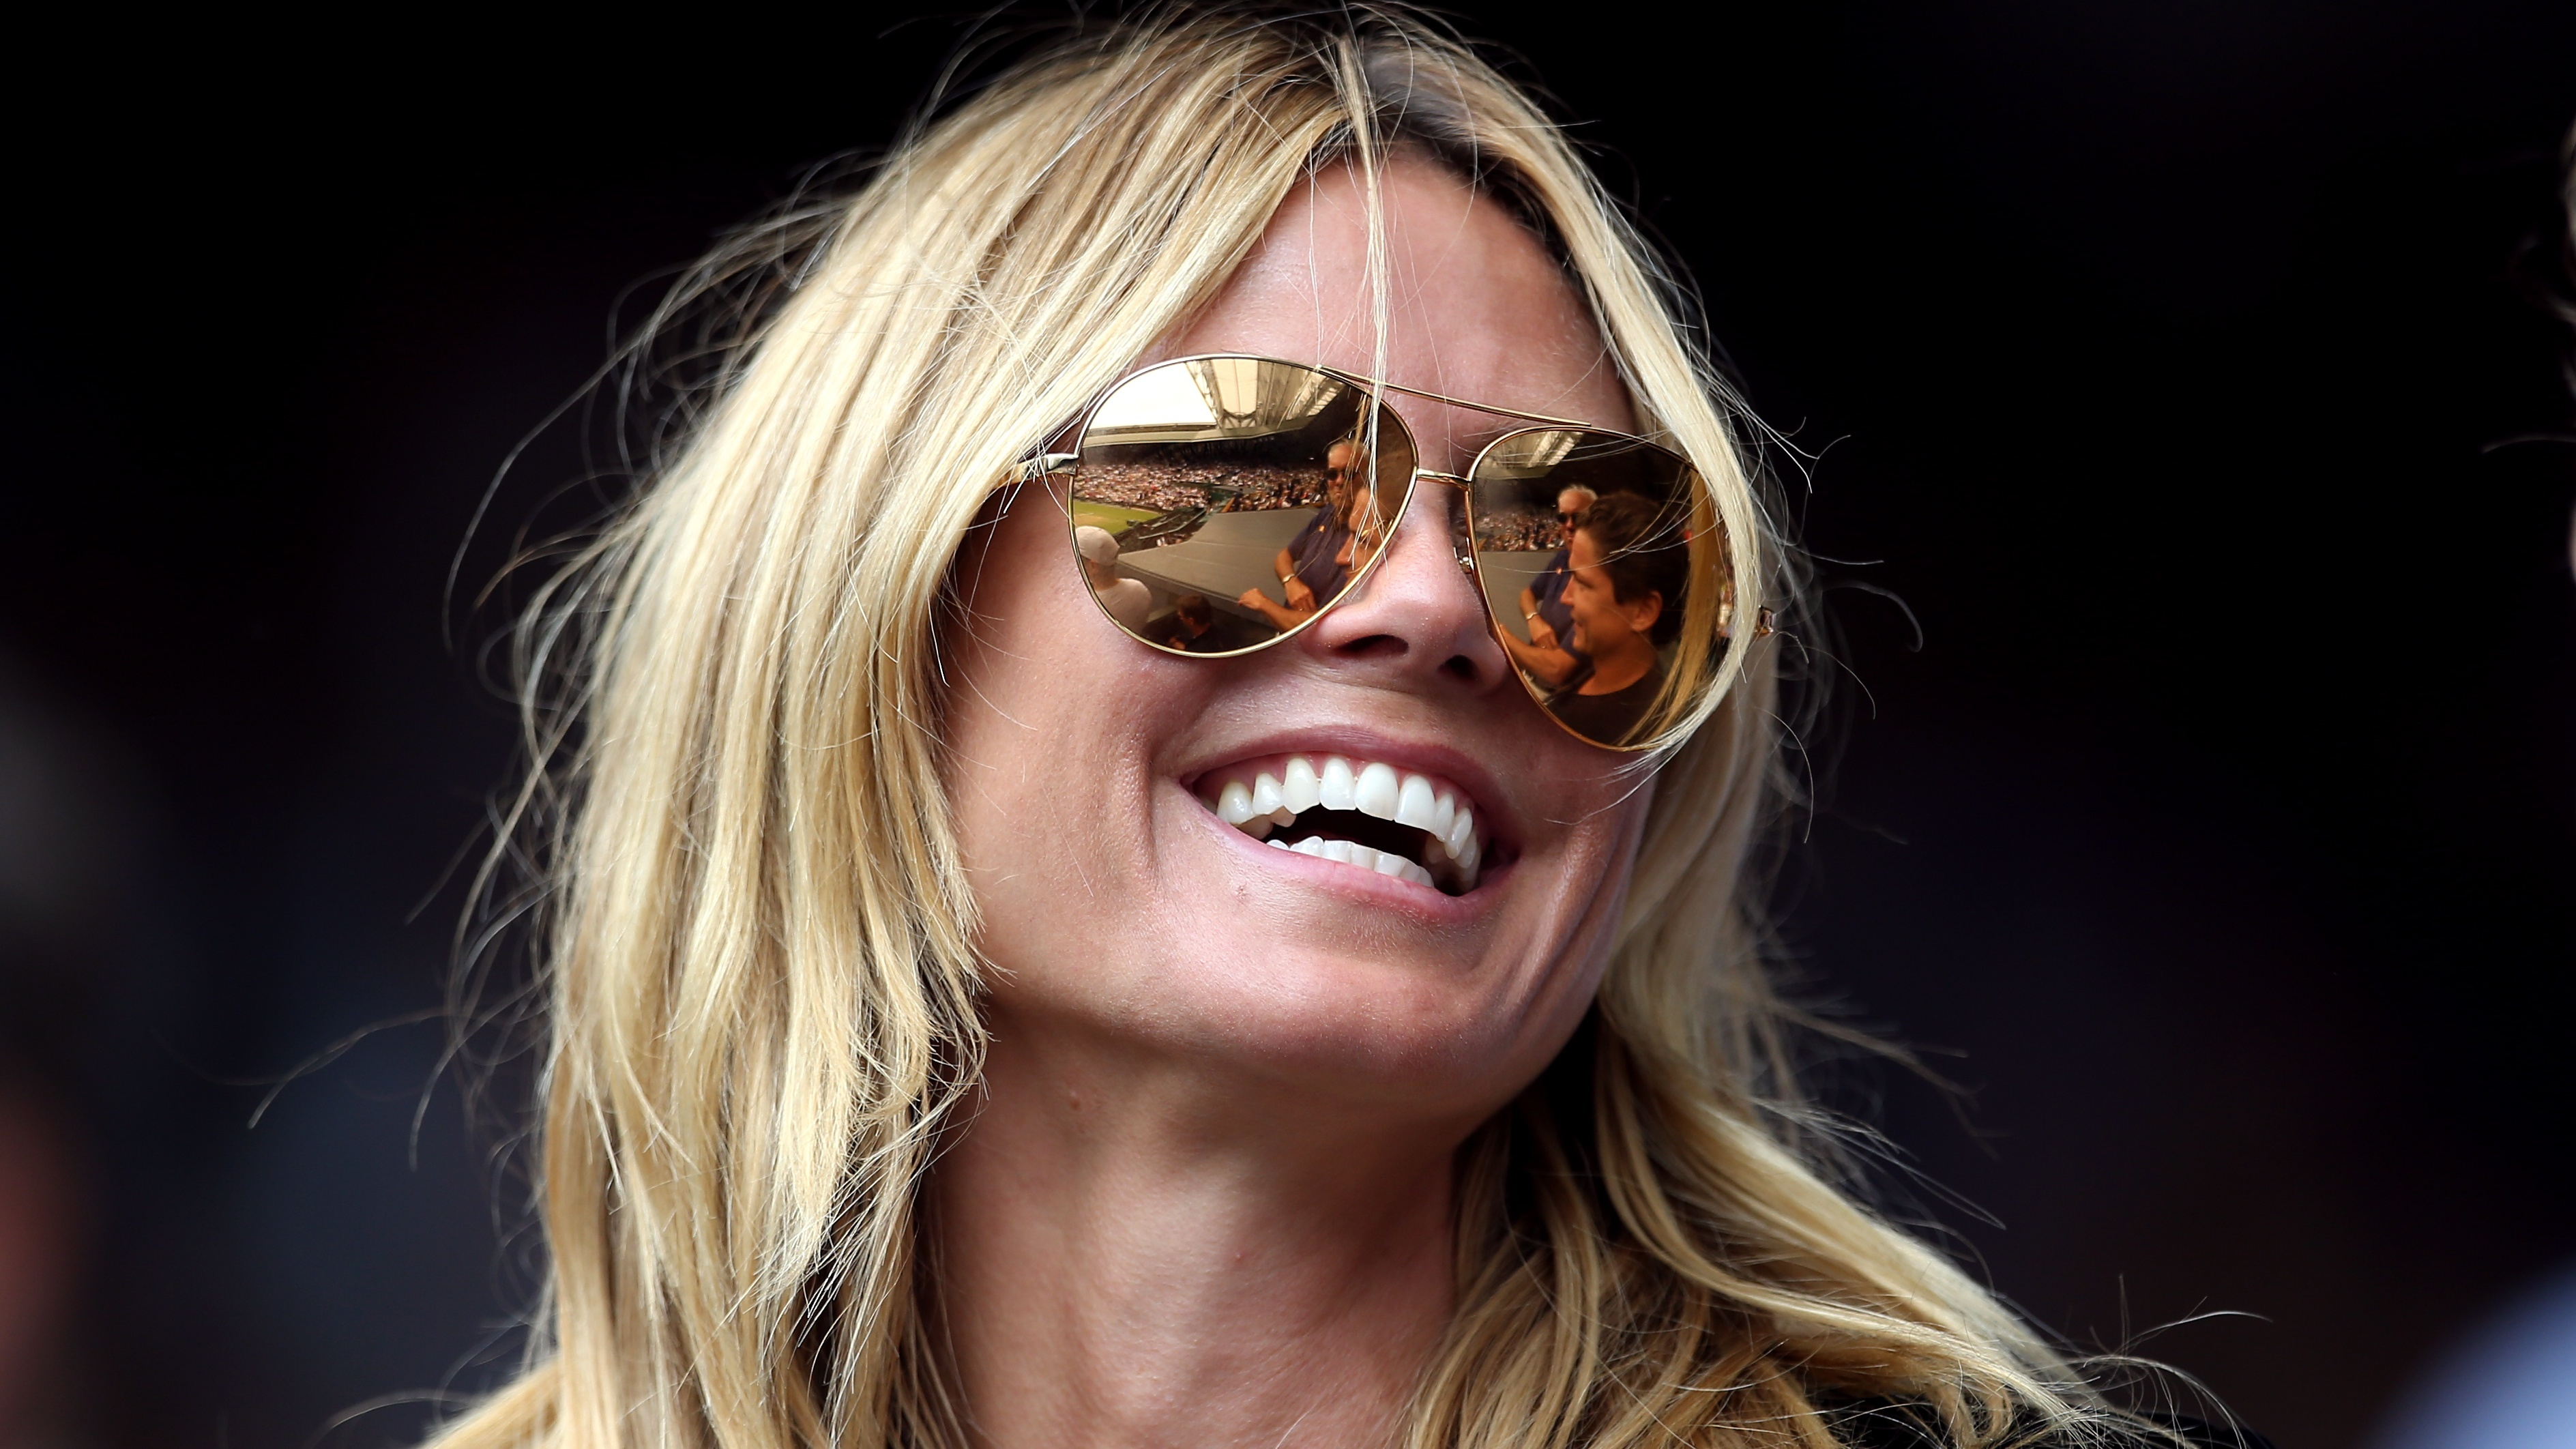 The supermodel has previously designed for brands such as Victoria's Secret and Birkenstock.